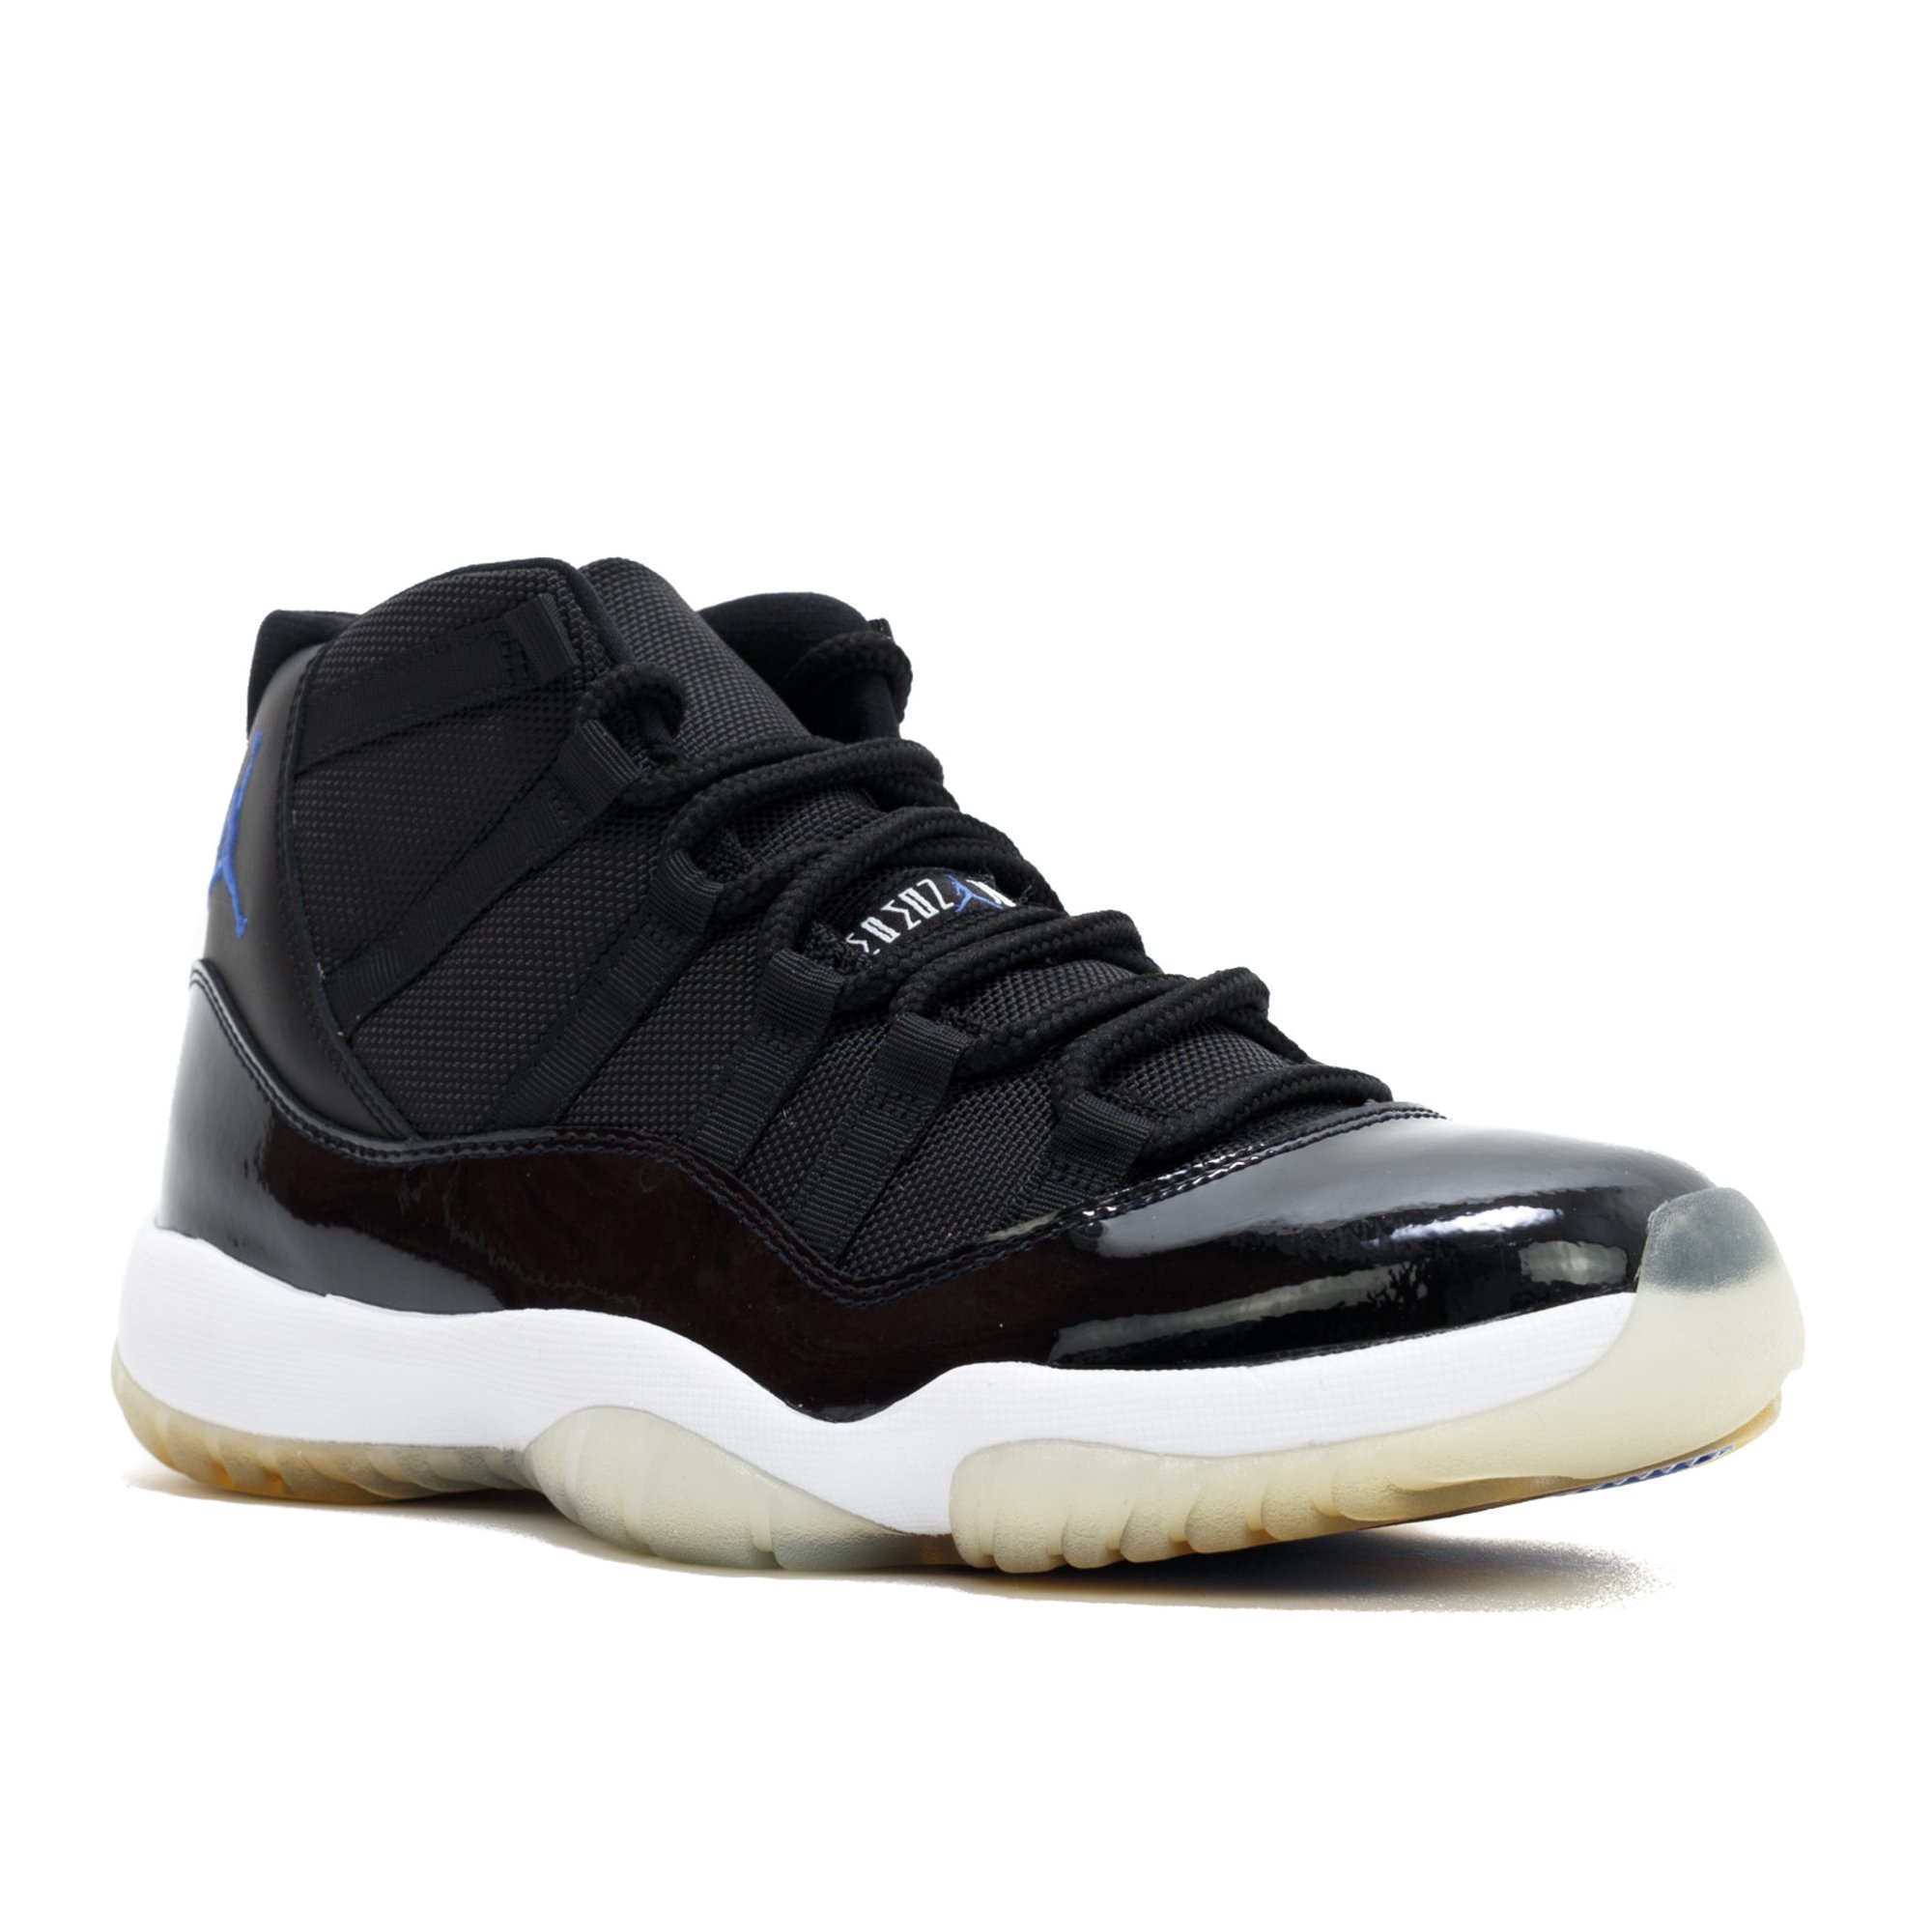 9f0e0b71d2be5c Air Jordan - Men - Air Jordan 11 Retro  Space Jam 2009 Release  - 378037-041  - Size 9.5